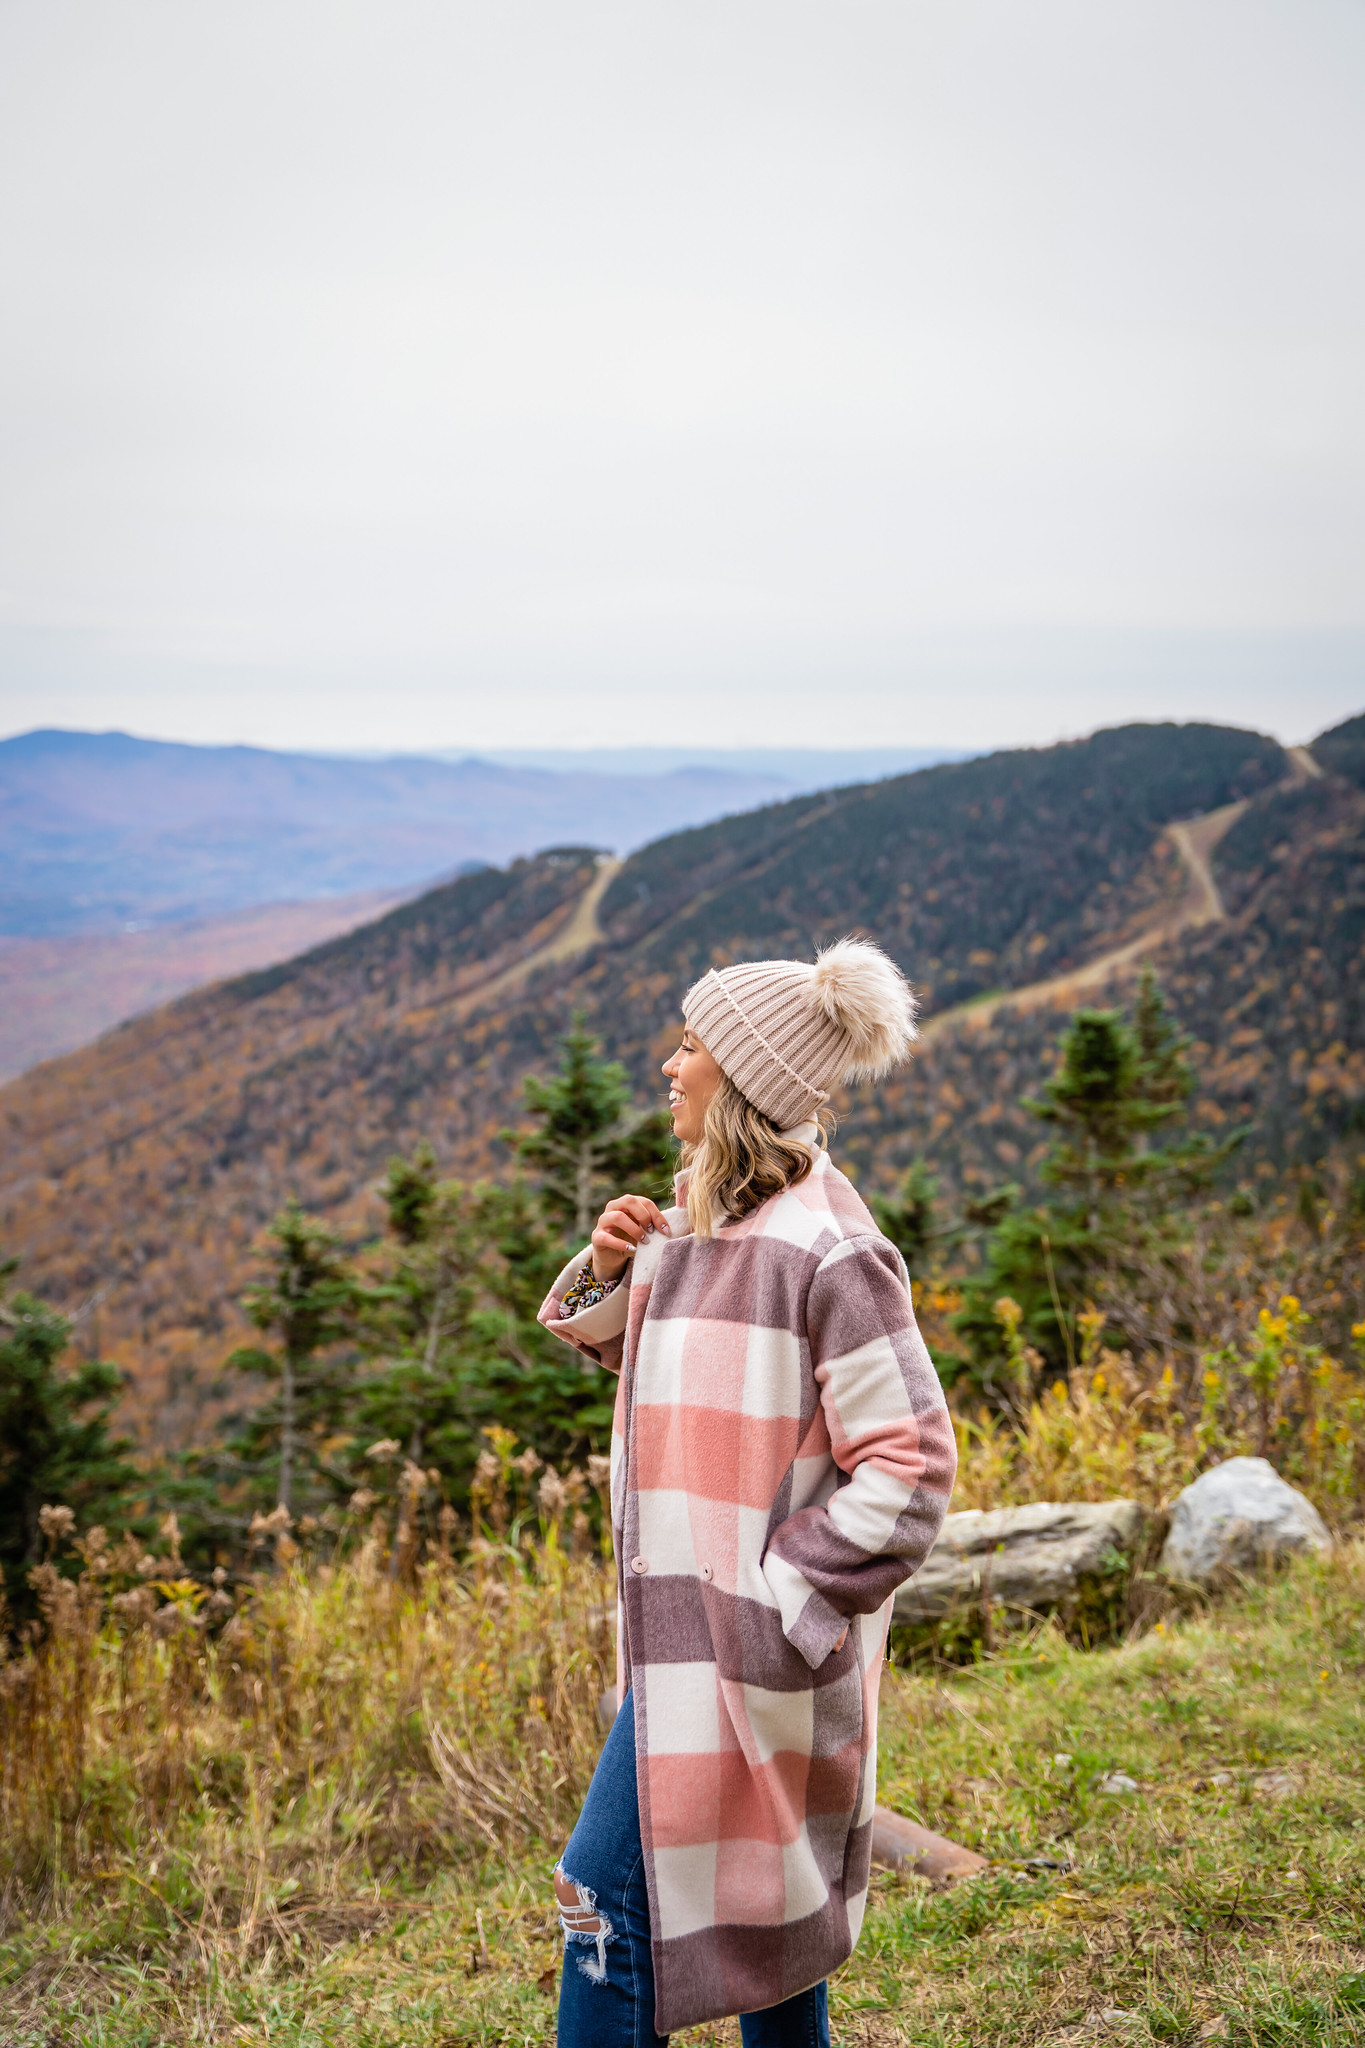 Pink Plaid Winter Coat & Pom Pom Beanie | Stowe Mountain Resort Mount Mansfield | What to Wear in Vermont in the Fall | Vermont Packing List for Fall | What to Wear in Vermont in October | What to Wear on a Fall Vacation | Fall Outfits